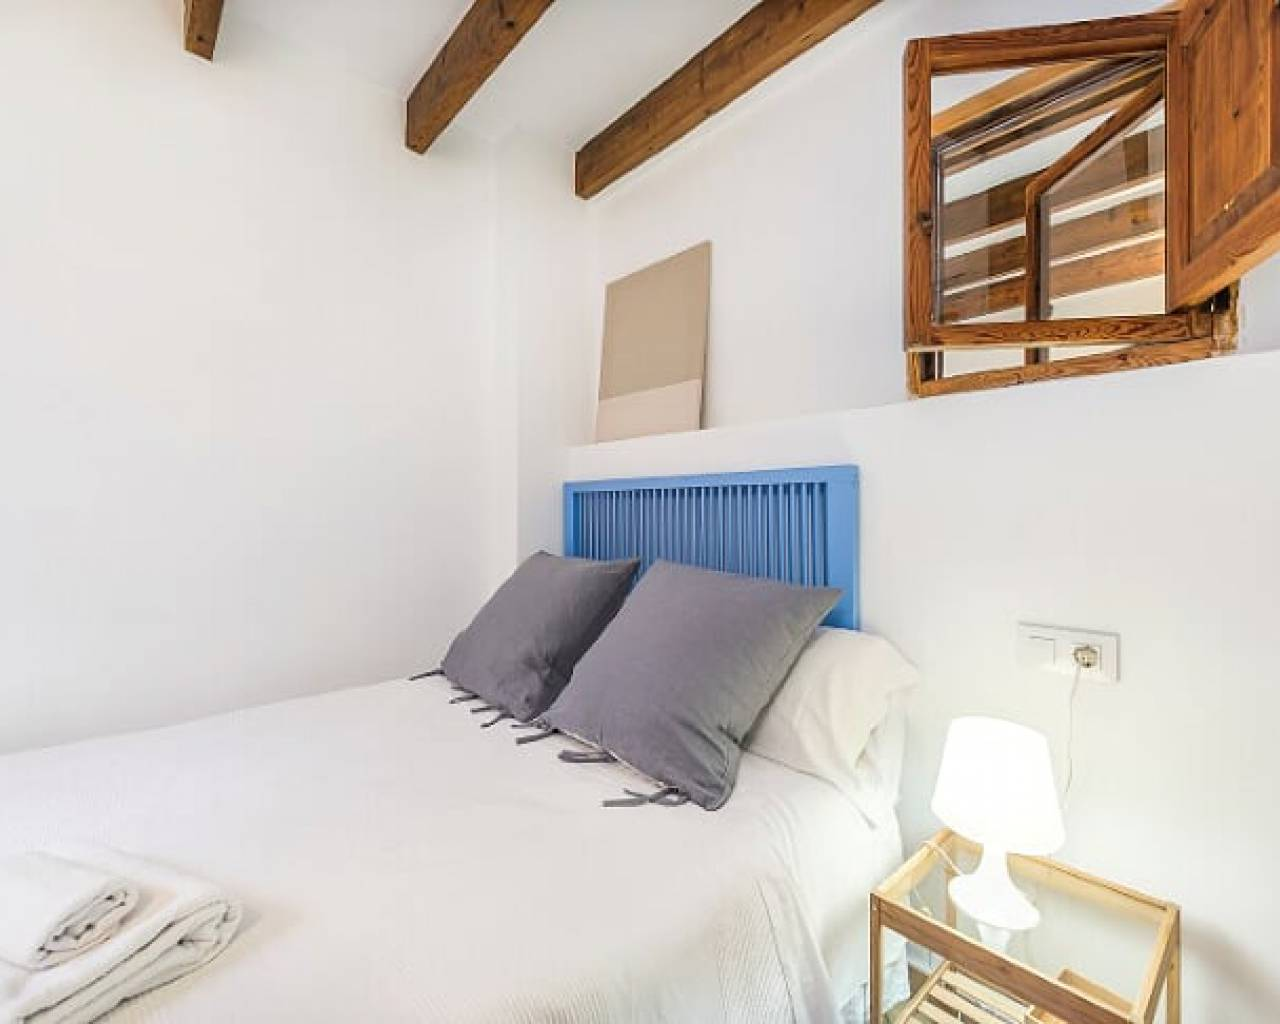 Rent a Chalet in Puerto Andraxt,Mallorca